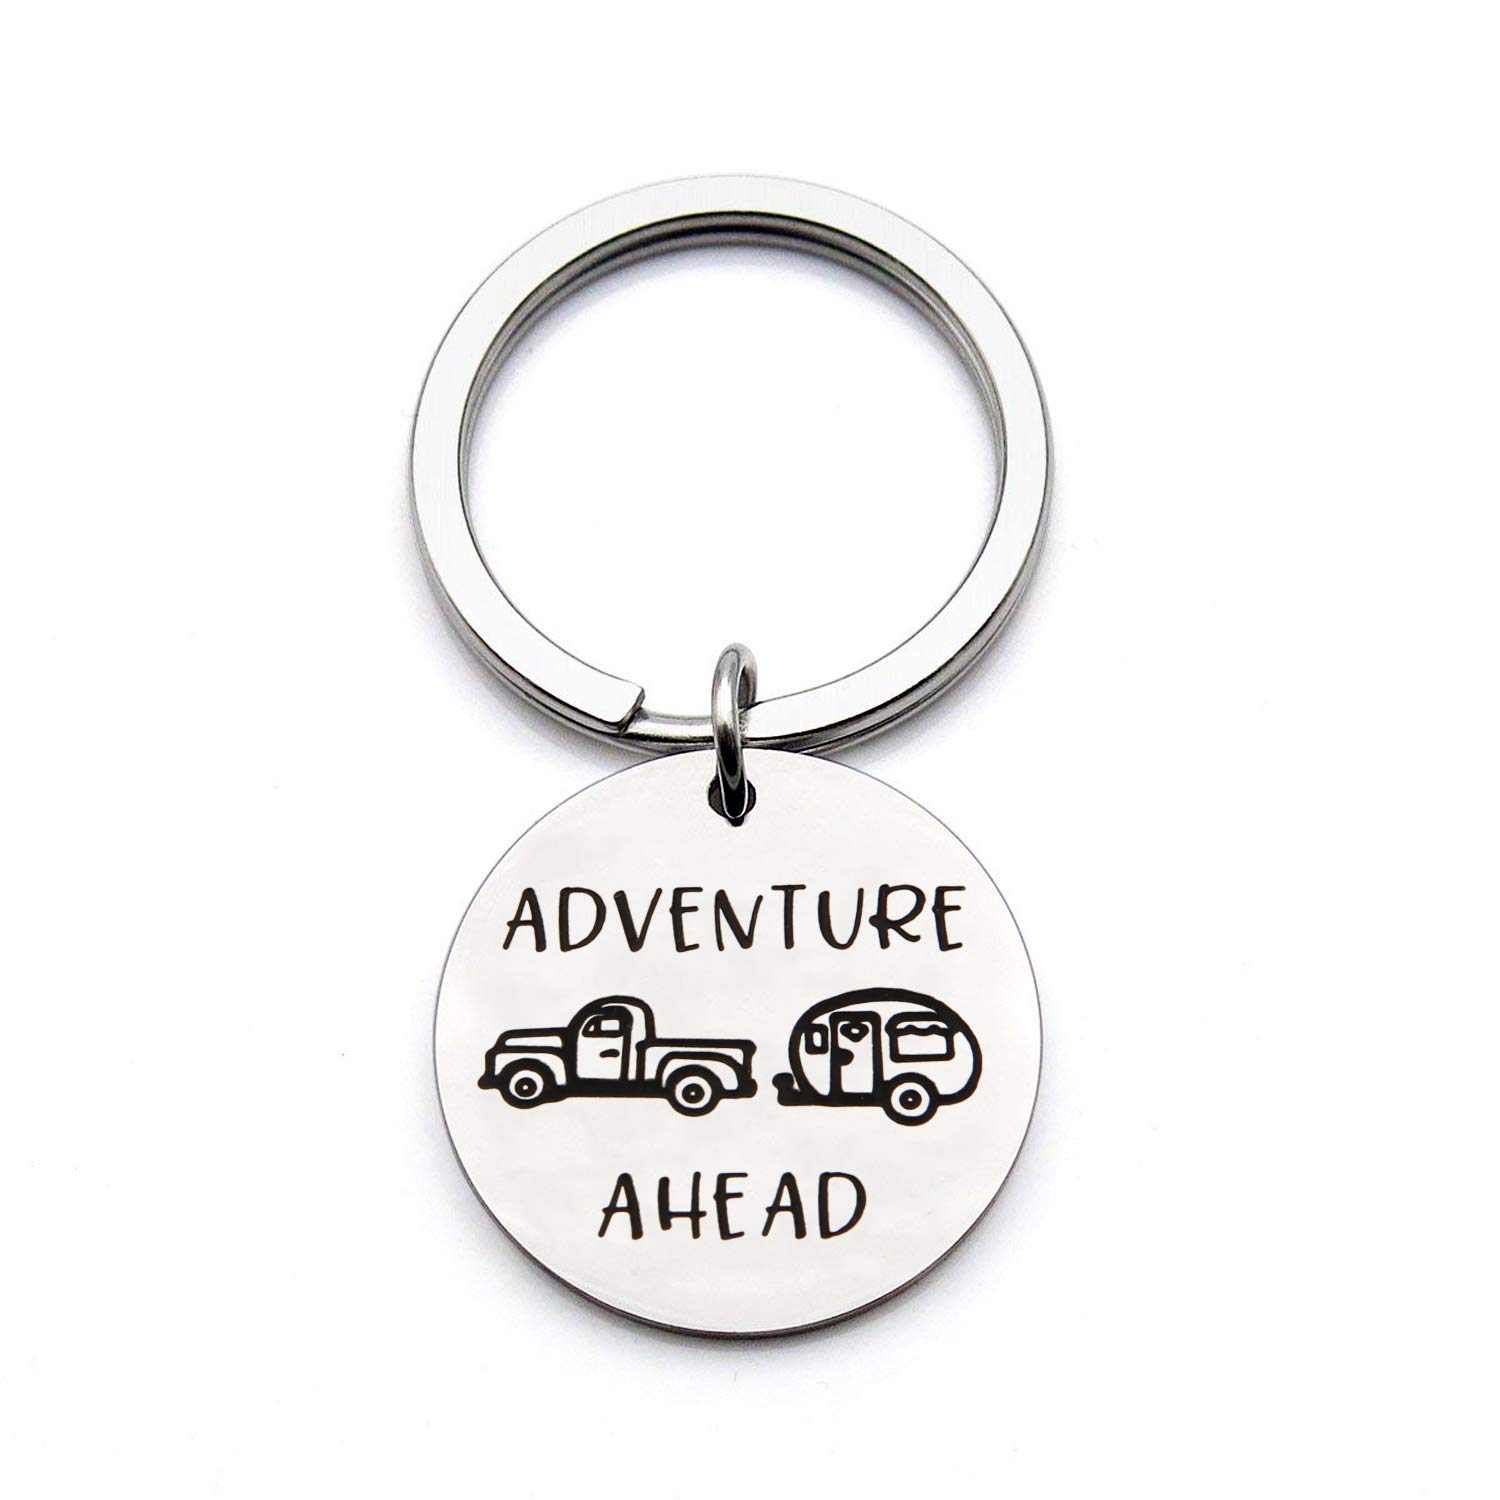 Camping Jewelry Outdoor Gifts Adventure Ahead Keychain Camp Gifts for Graduate Traveler Wanderlust (Adventure Ahead Keychain)